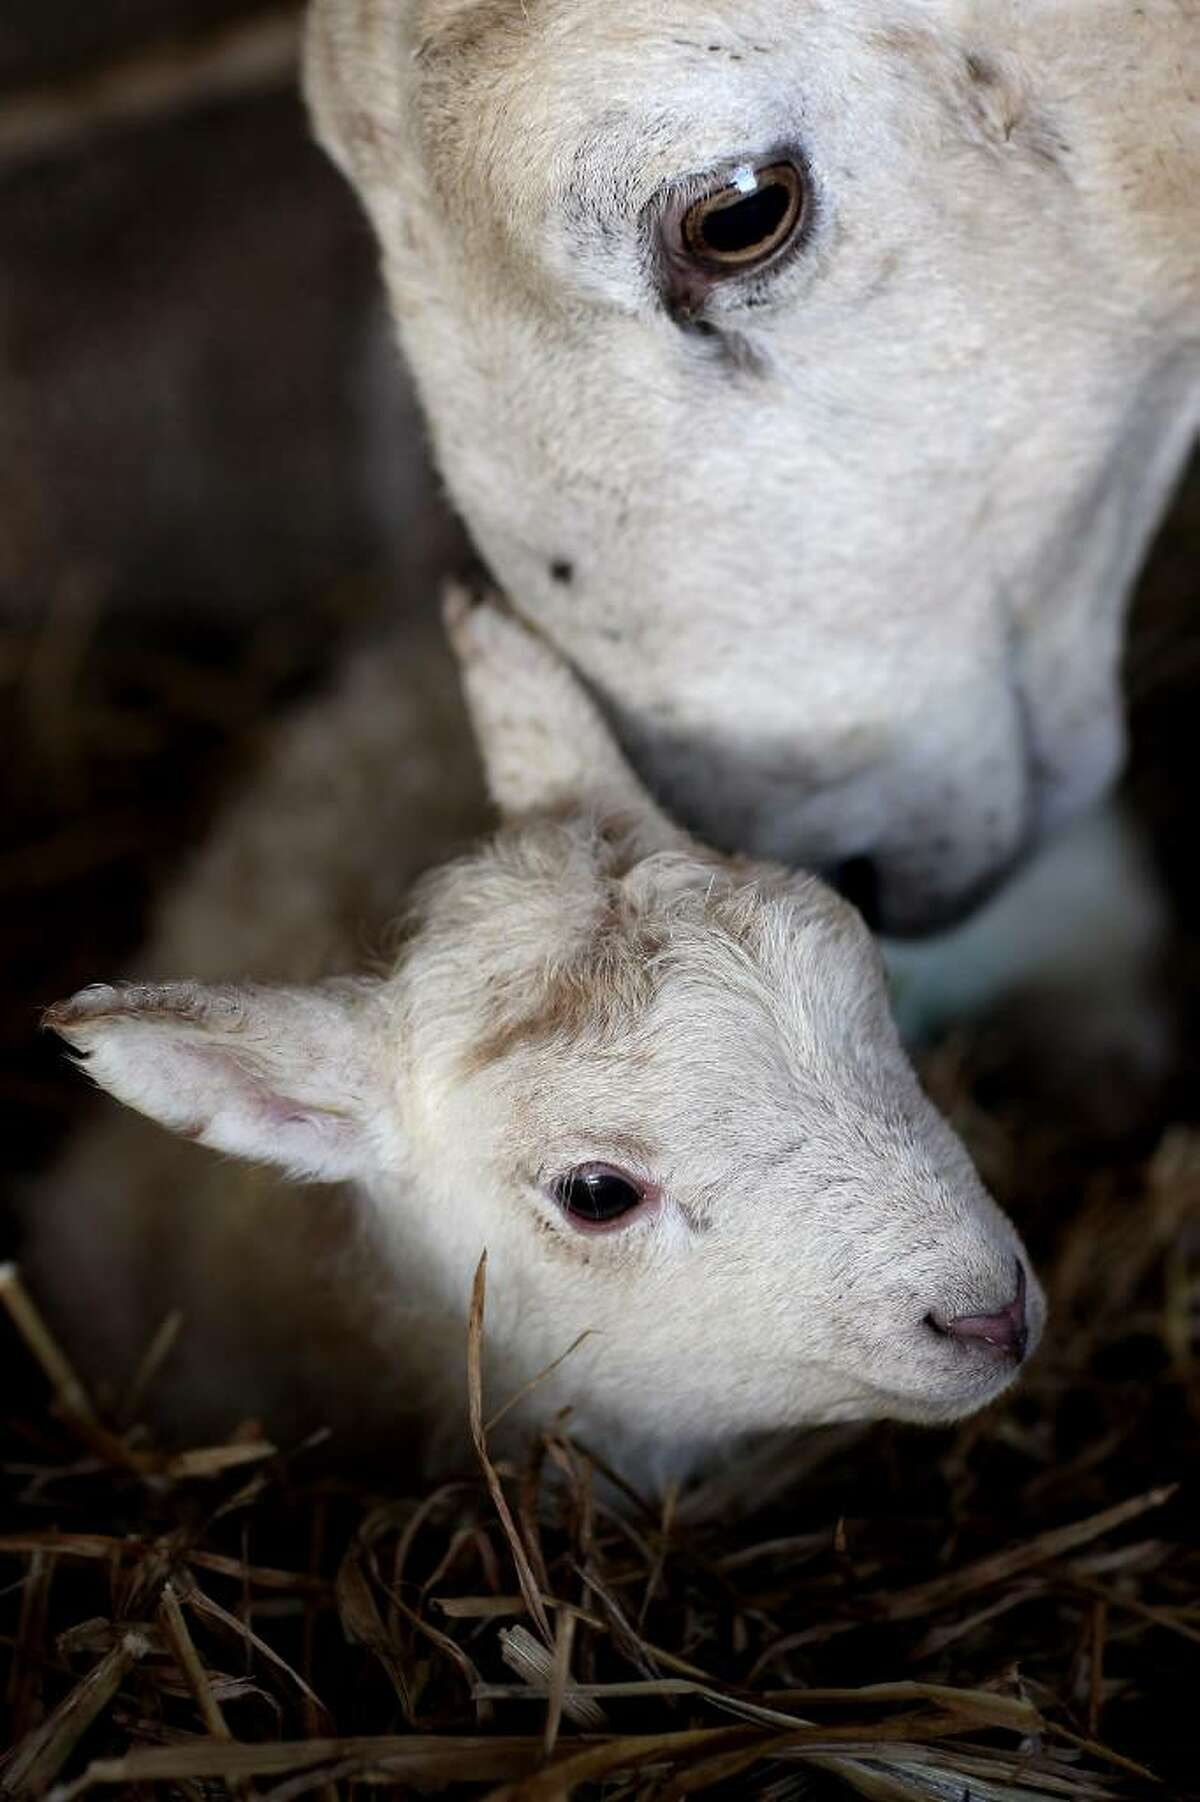 BRECON, WALES - MARCH 11: A sheep sniffs its lamb in the lambing sheds of Gwndwnwal Farm on March 11, 2010 in Brecon, Wales. Dai Brute runs Gwndwnwal Farm in Llan-Talyllyn, Brecon with his wife Dulcie Brute and son Paul Brute. February to May is lambing season where day and night is spent delivering new born lambs. The family is currently working hard during lambing season which lasts from February - May, during which their dedication and hard work can result in over 1200 new lambs being added to the flock over a season. (Photo by Chris Jackson/Getty Images)